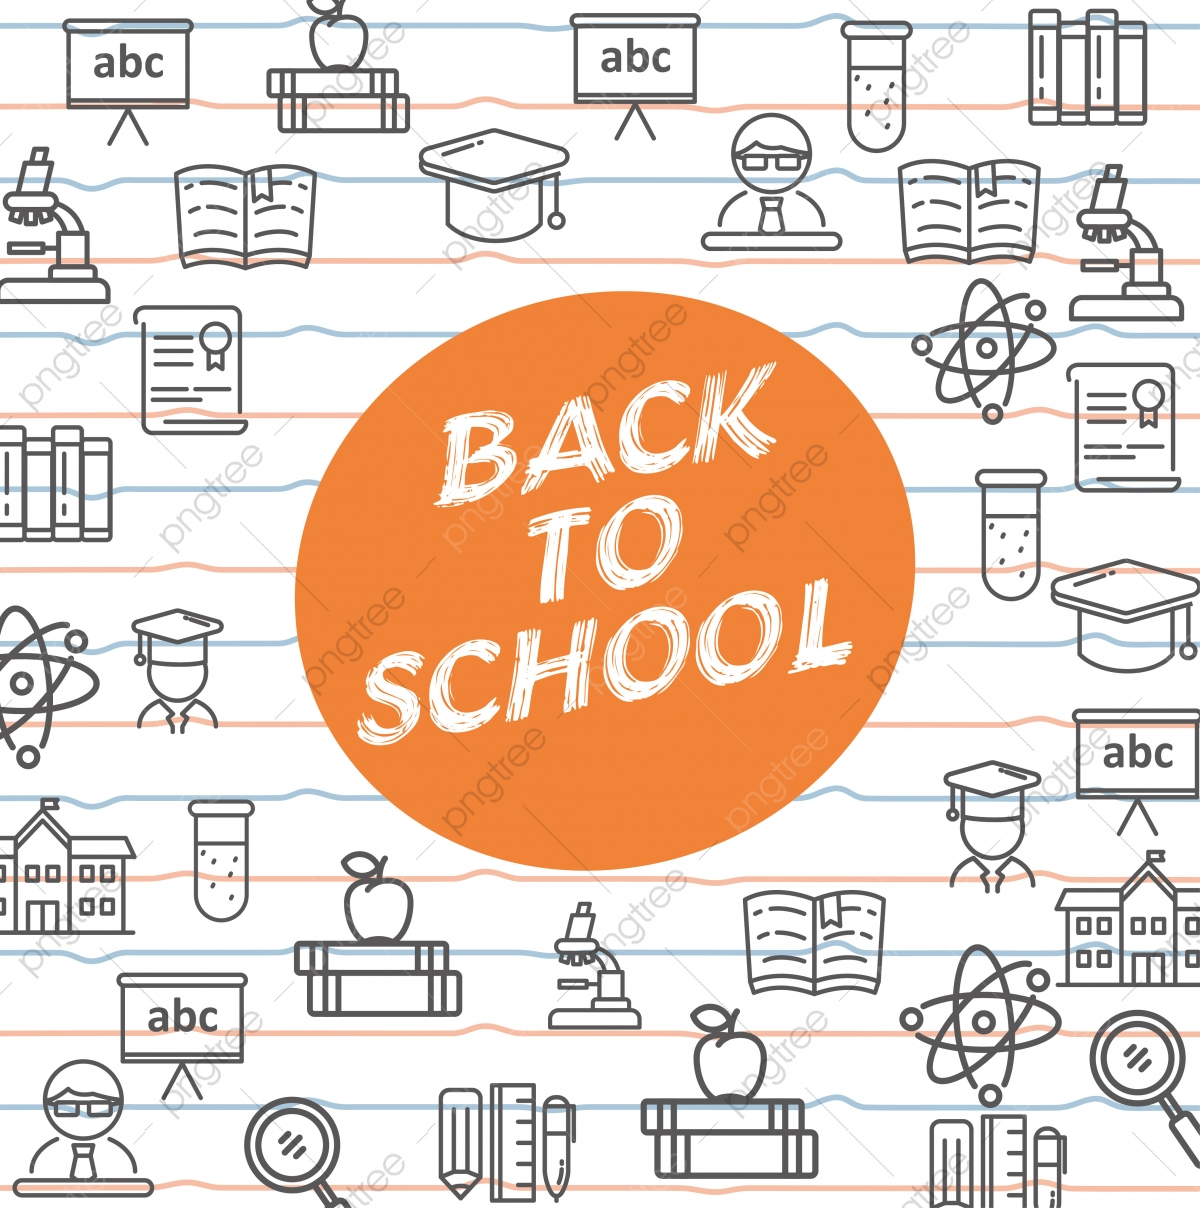 Back To School Template Design School And Education Related Icon With Simple Line Design Back To School Line Icon Png And Vector With Transparent Background For Free Download